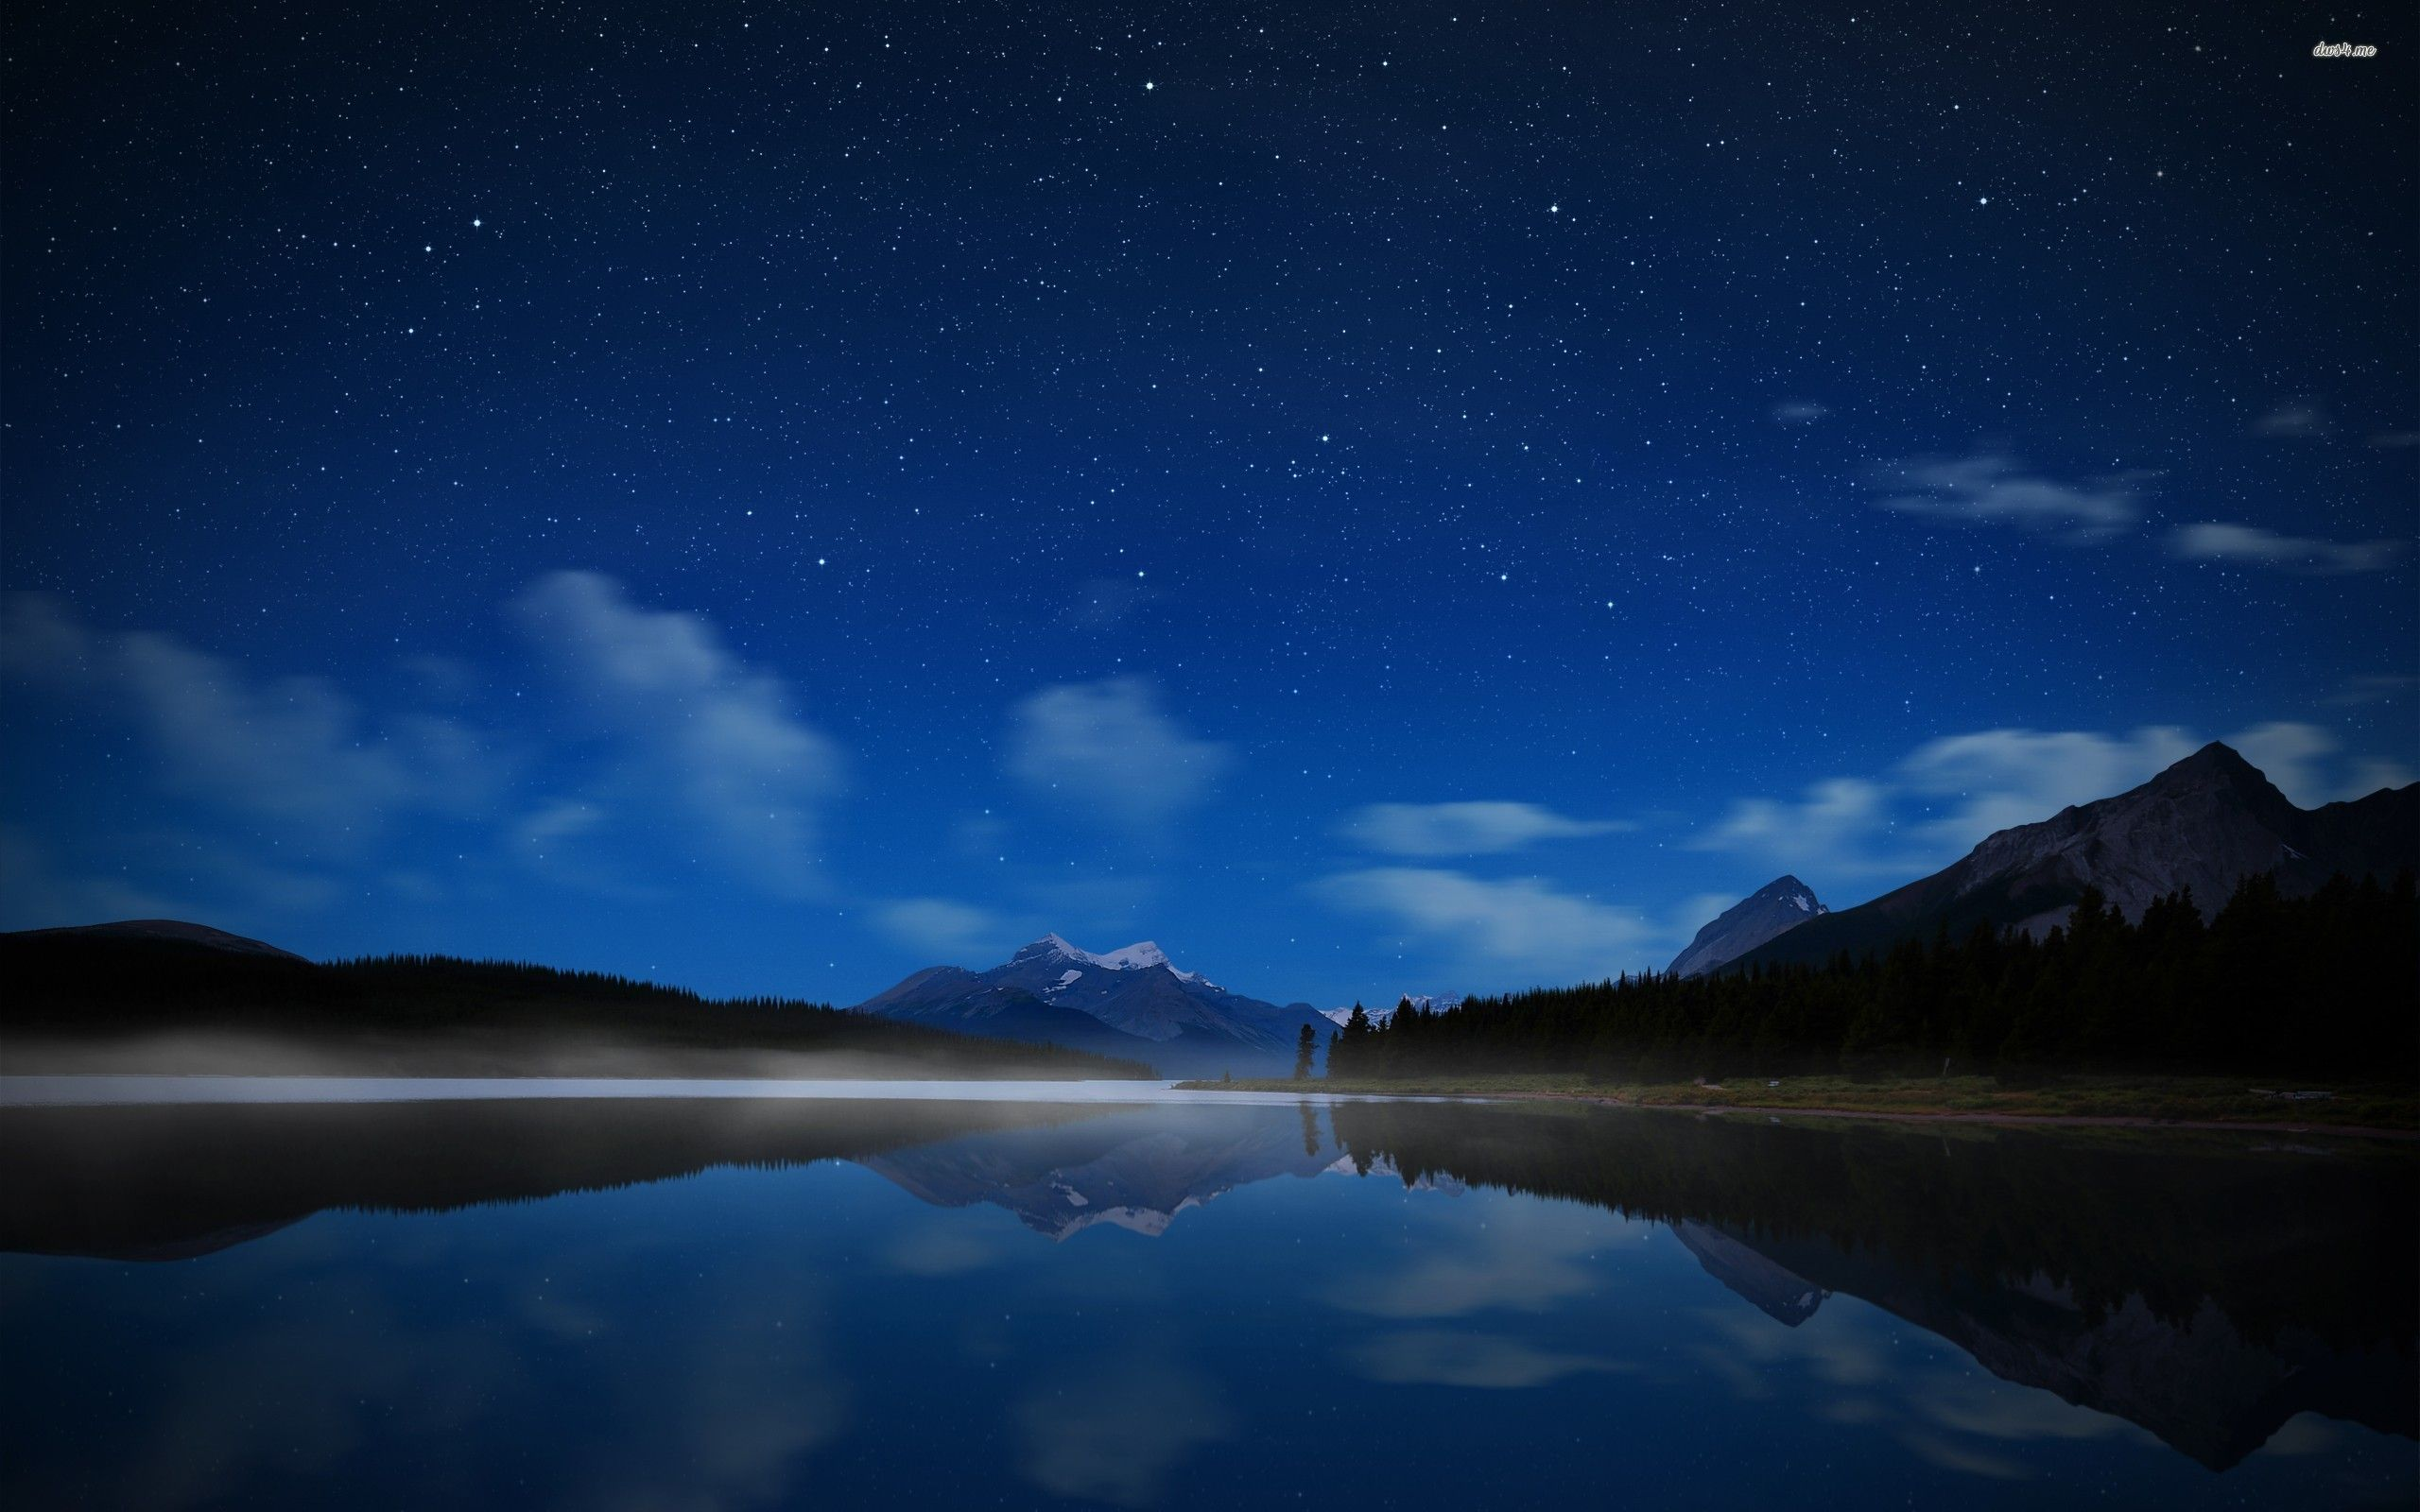 night sky desktop wallpaper - sf wallpaper